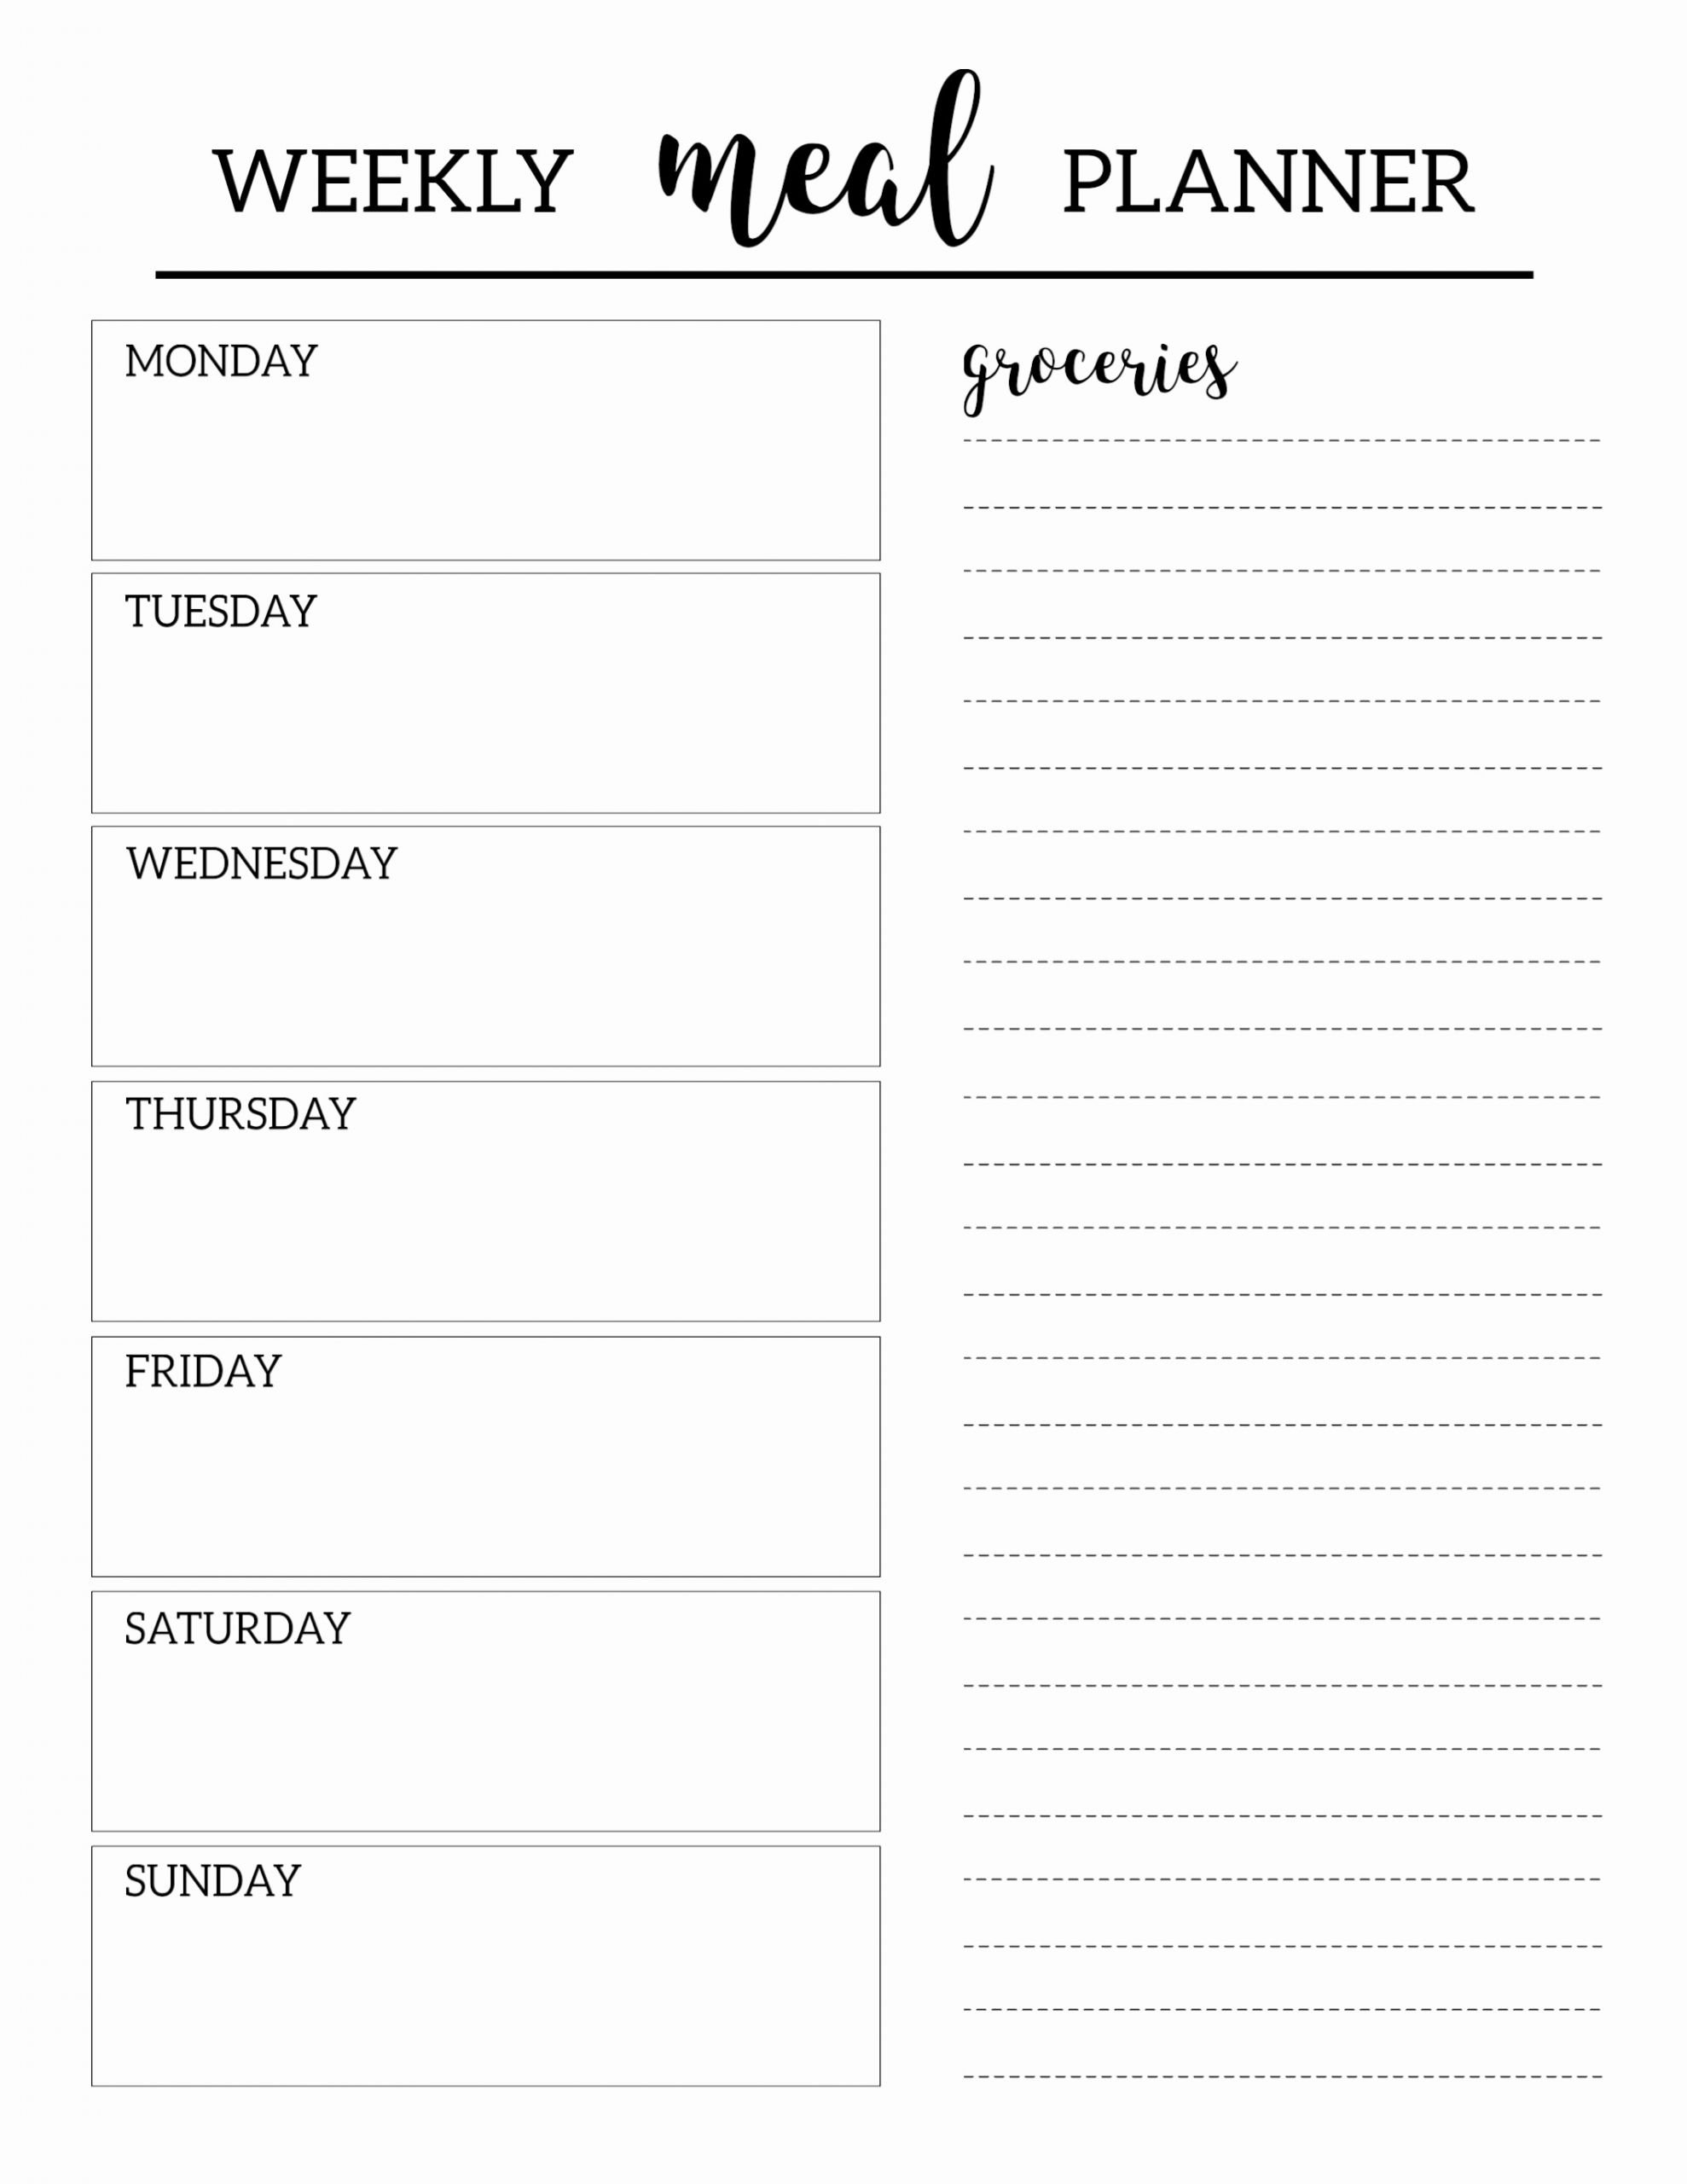 Menu Planner Template Printable Fresh Free Printable Meal Planner Template